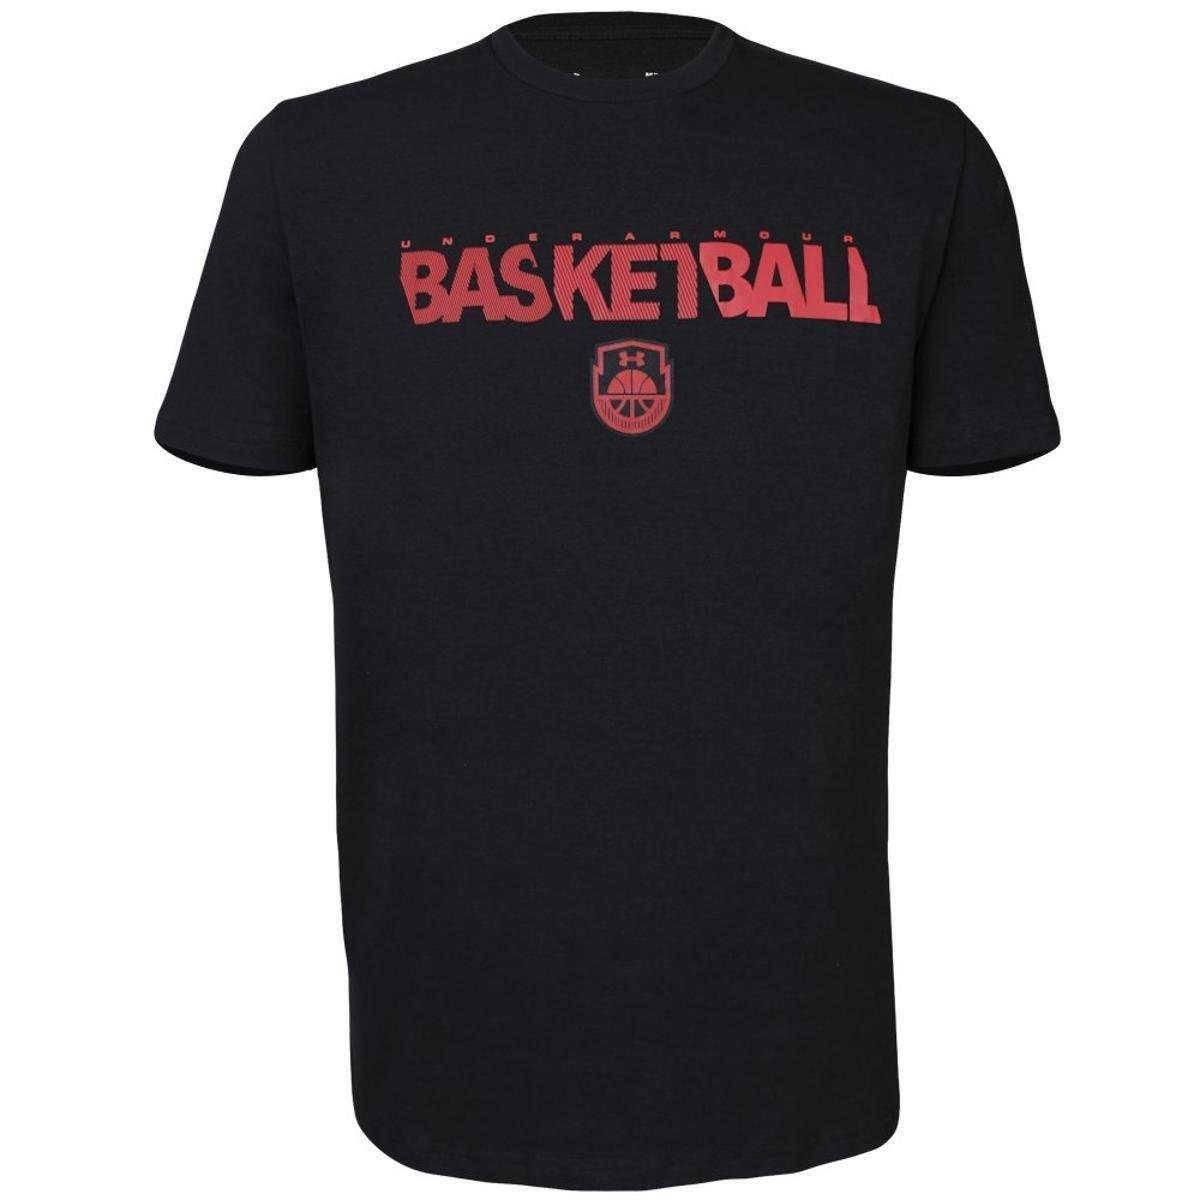 Camiseta Under Armour Basketball Wordmark Masculina - Preto - Compre ... 6c6c34f9ec83a